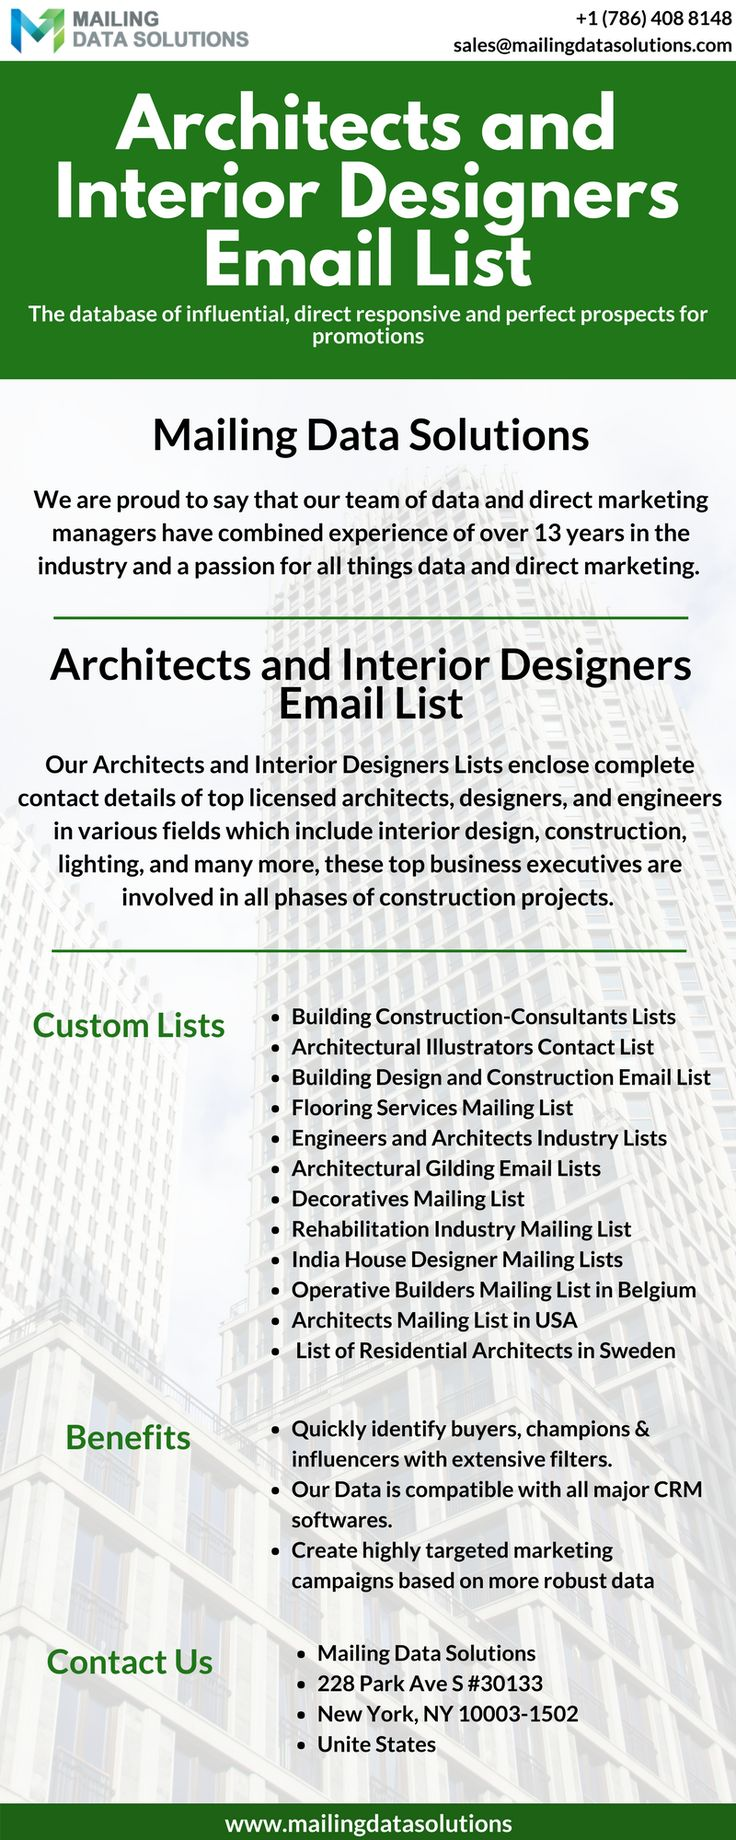 Reach The Top Business Professionals Through Architects And Interior Designers Email Lists